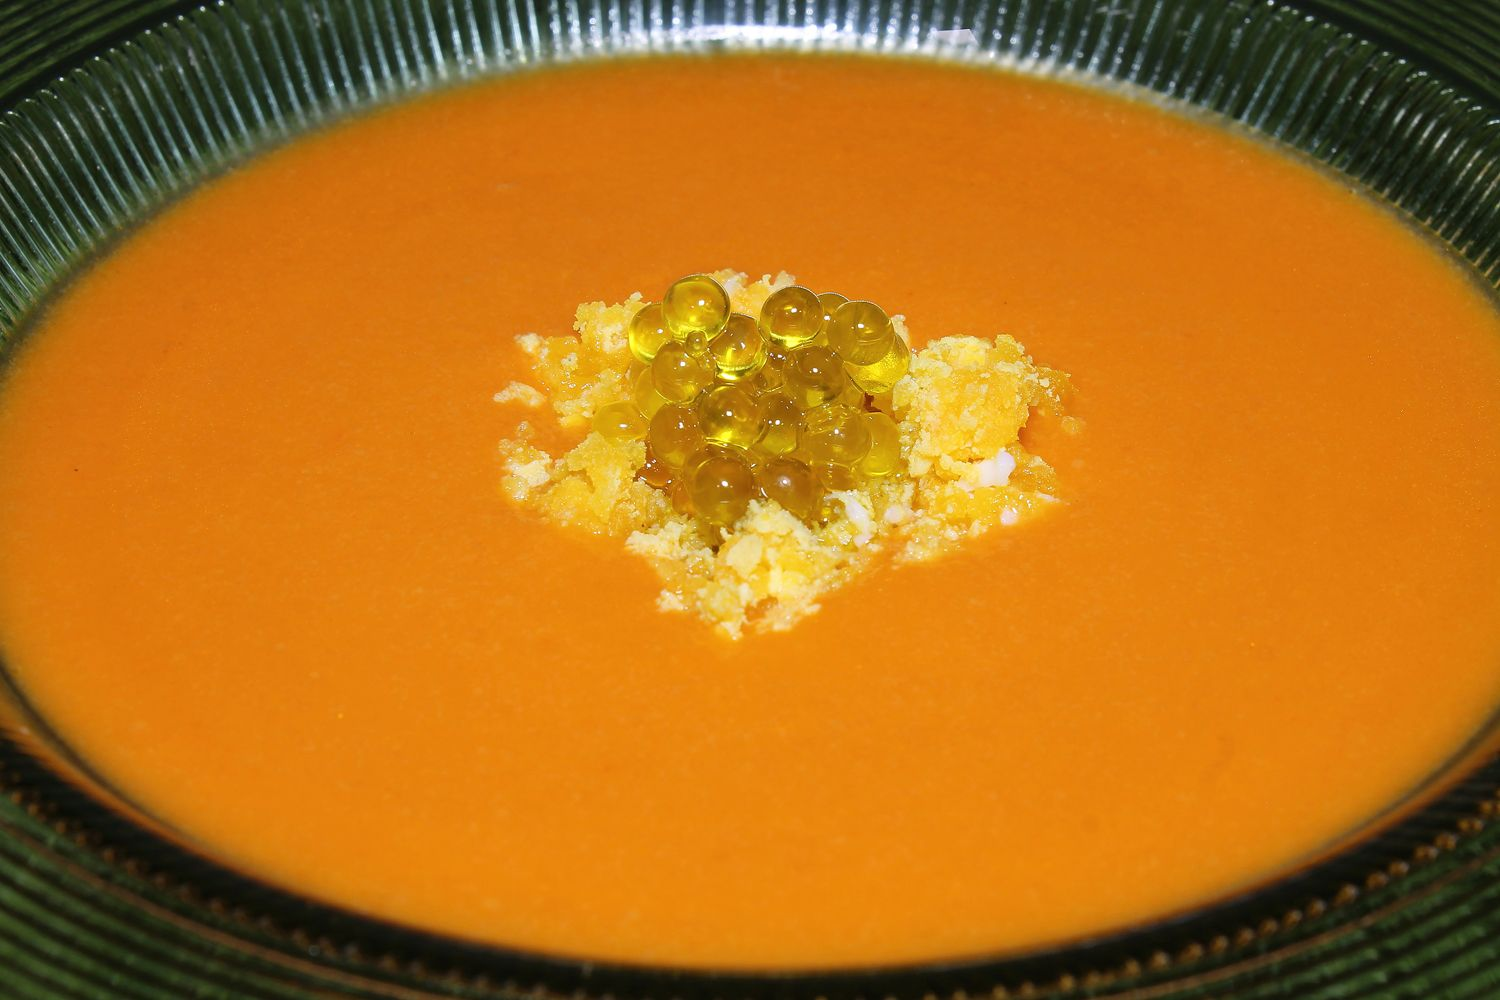 Exquisito salmorejo